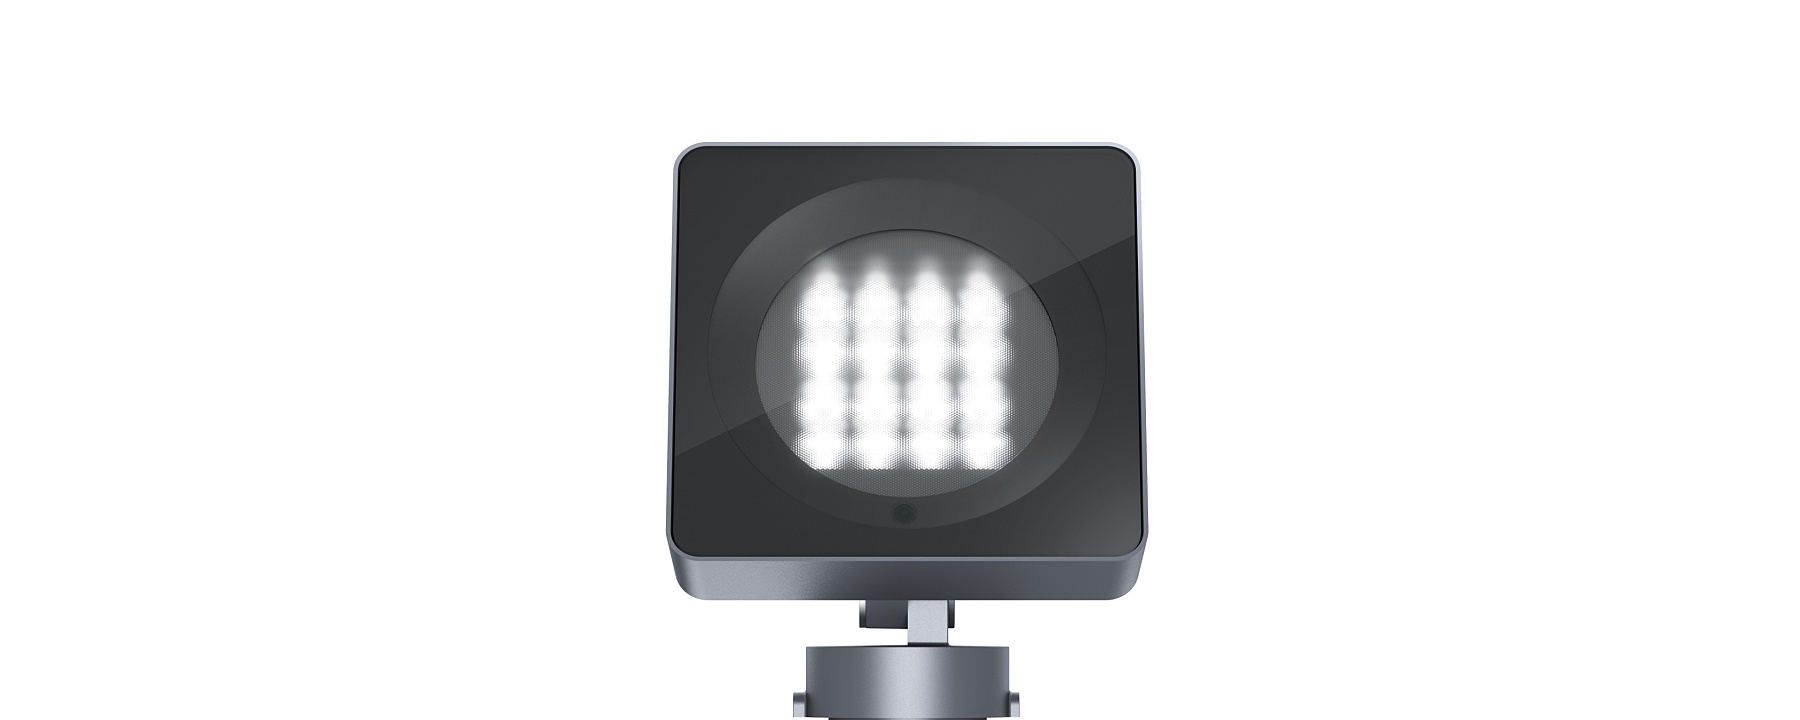 Outdoor Projectors Floodlights And Wallwashers Lightscan Garden Lights Without Wiring Additionally English Solar